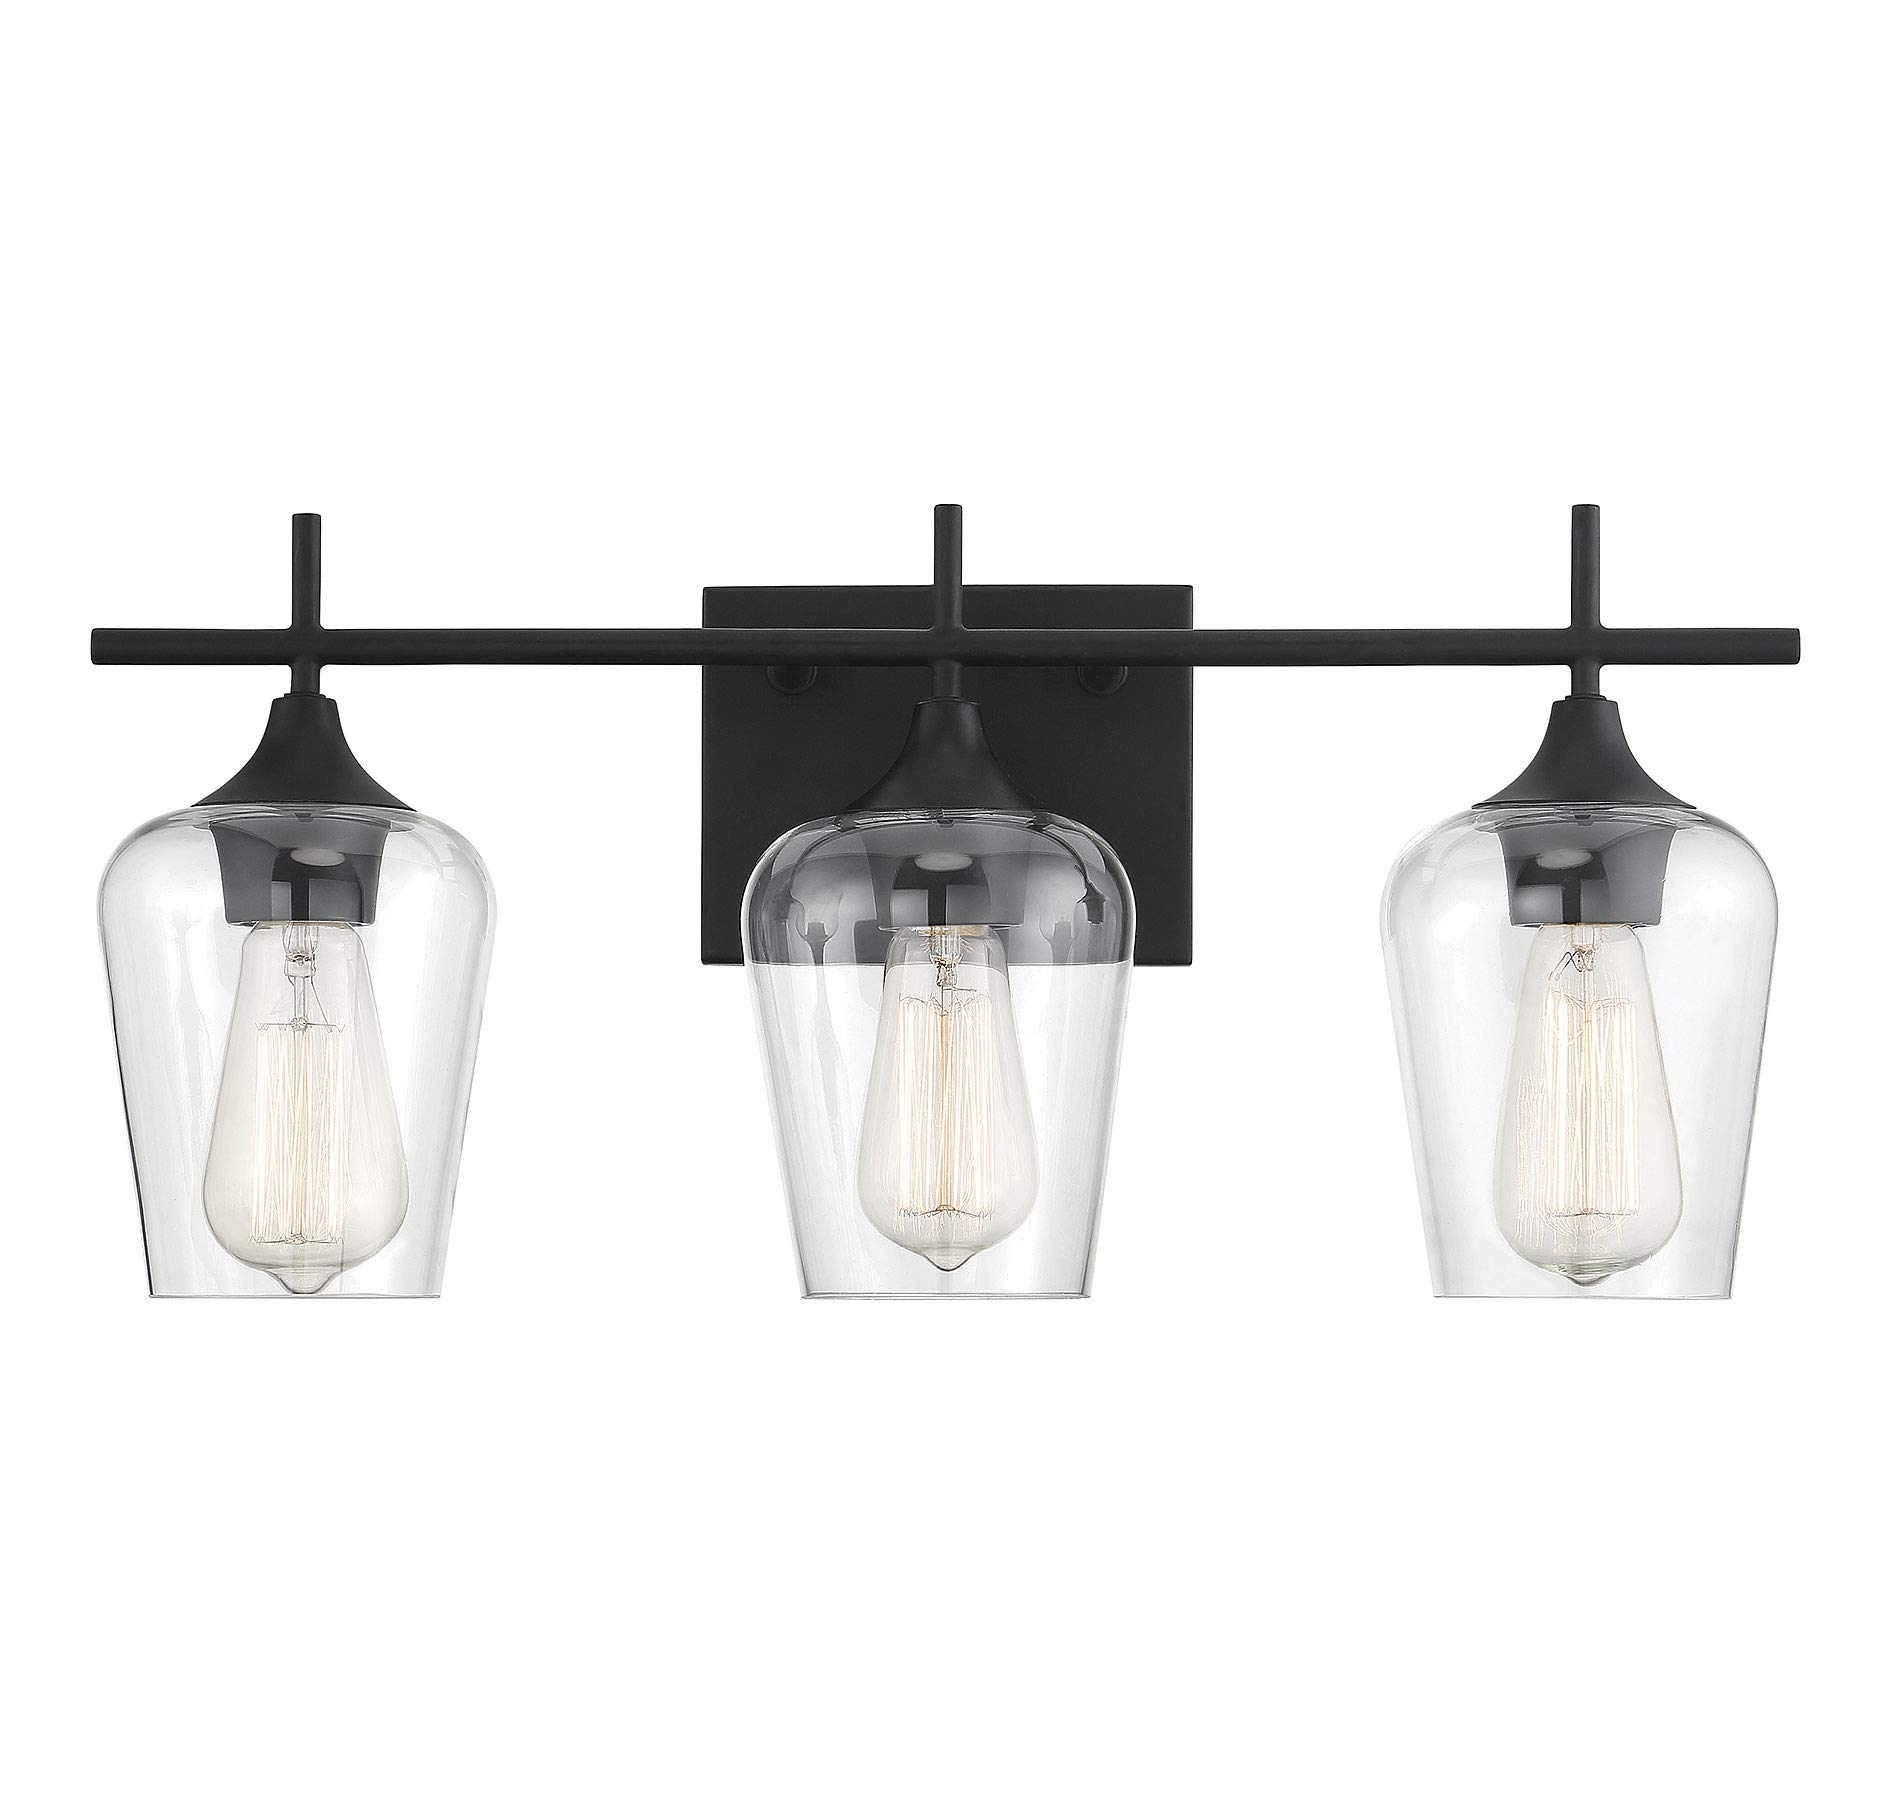 Savoy House 8-4030-3-BK Octave 3-Light Bathroom Vanity Light in a Black Finish with Clear Glass (21'' W x 9'' H)